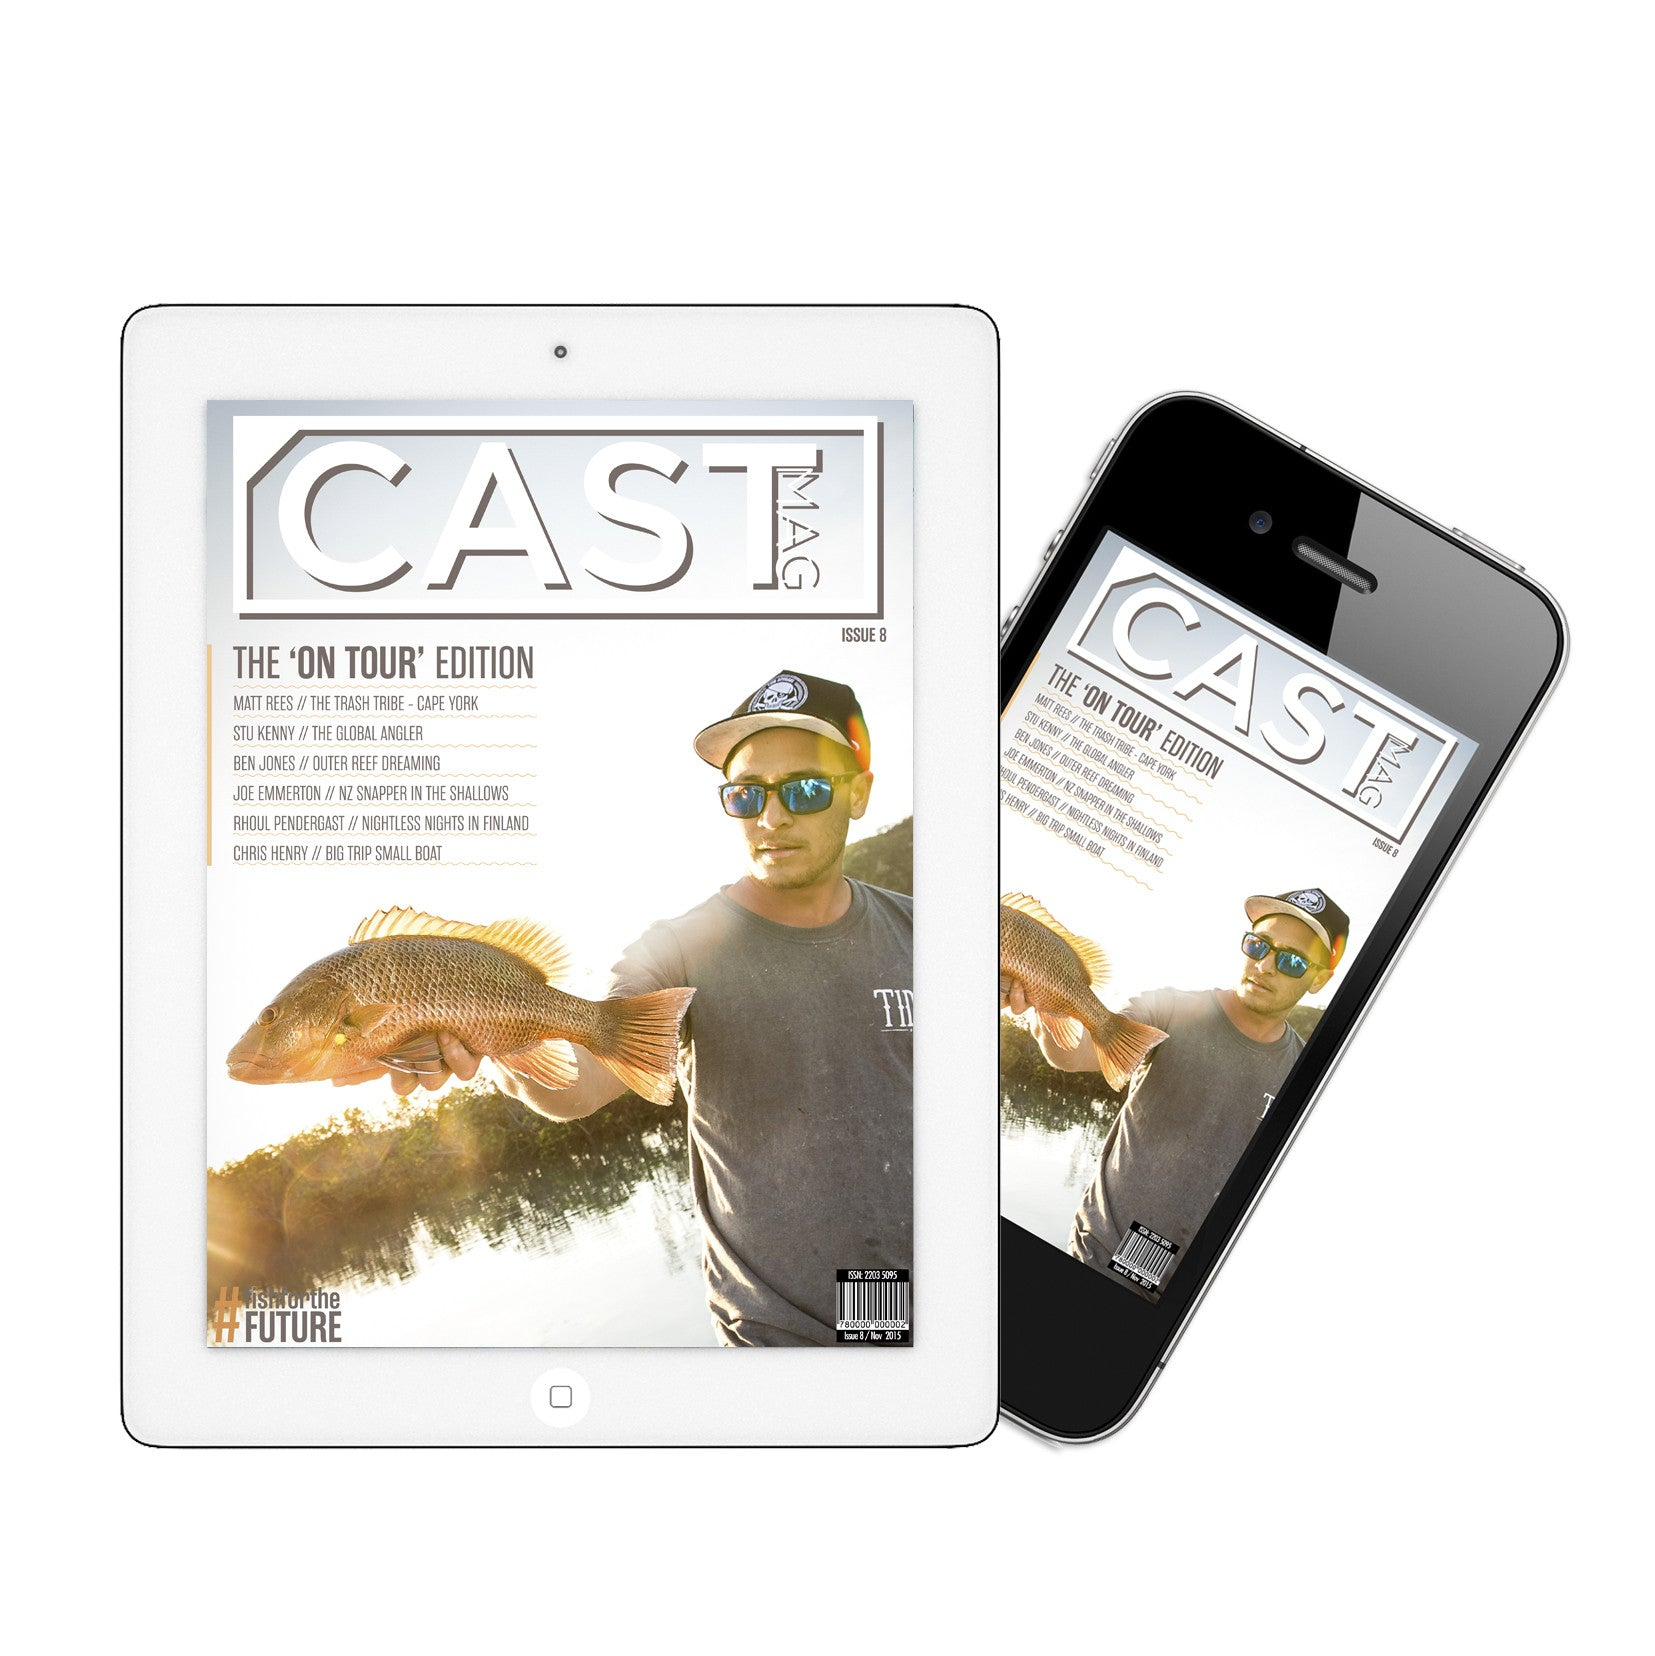 Cast Magazine - Yearly Subscription (Online Magazine Issues 18-21)